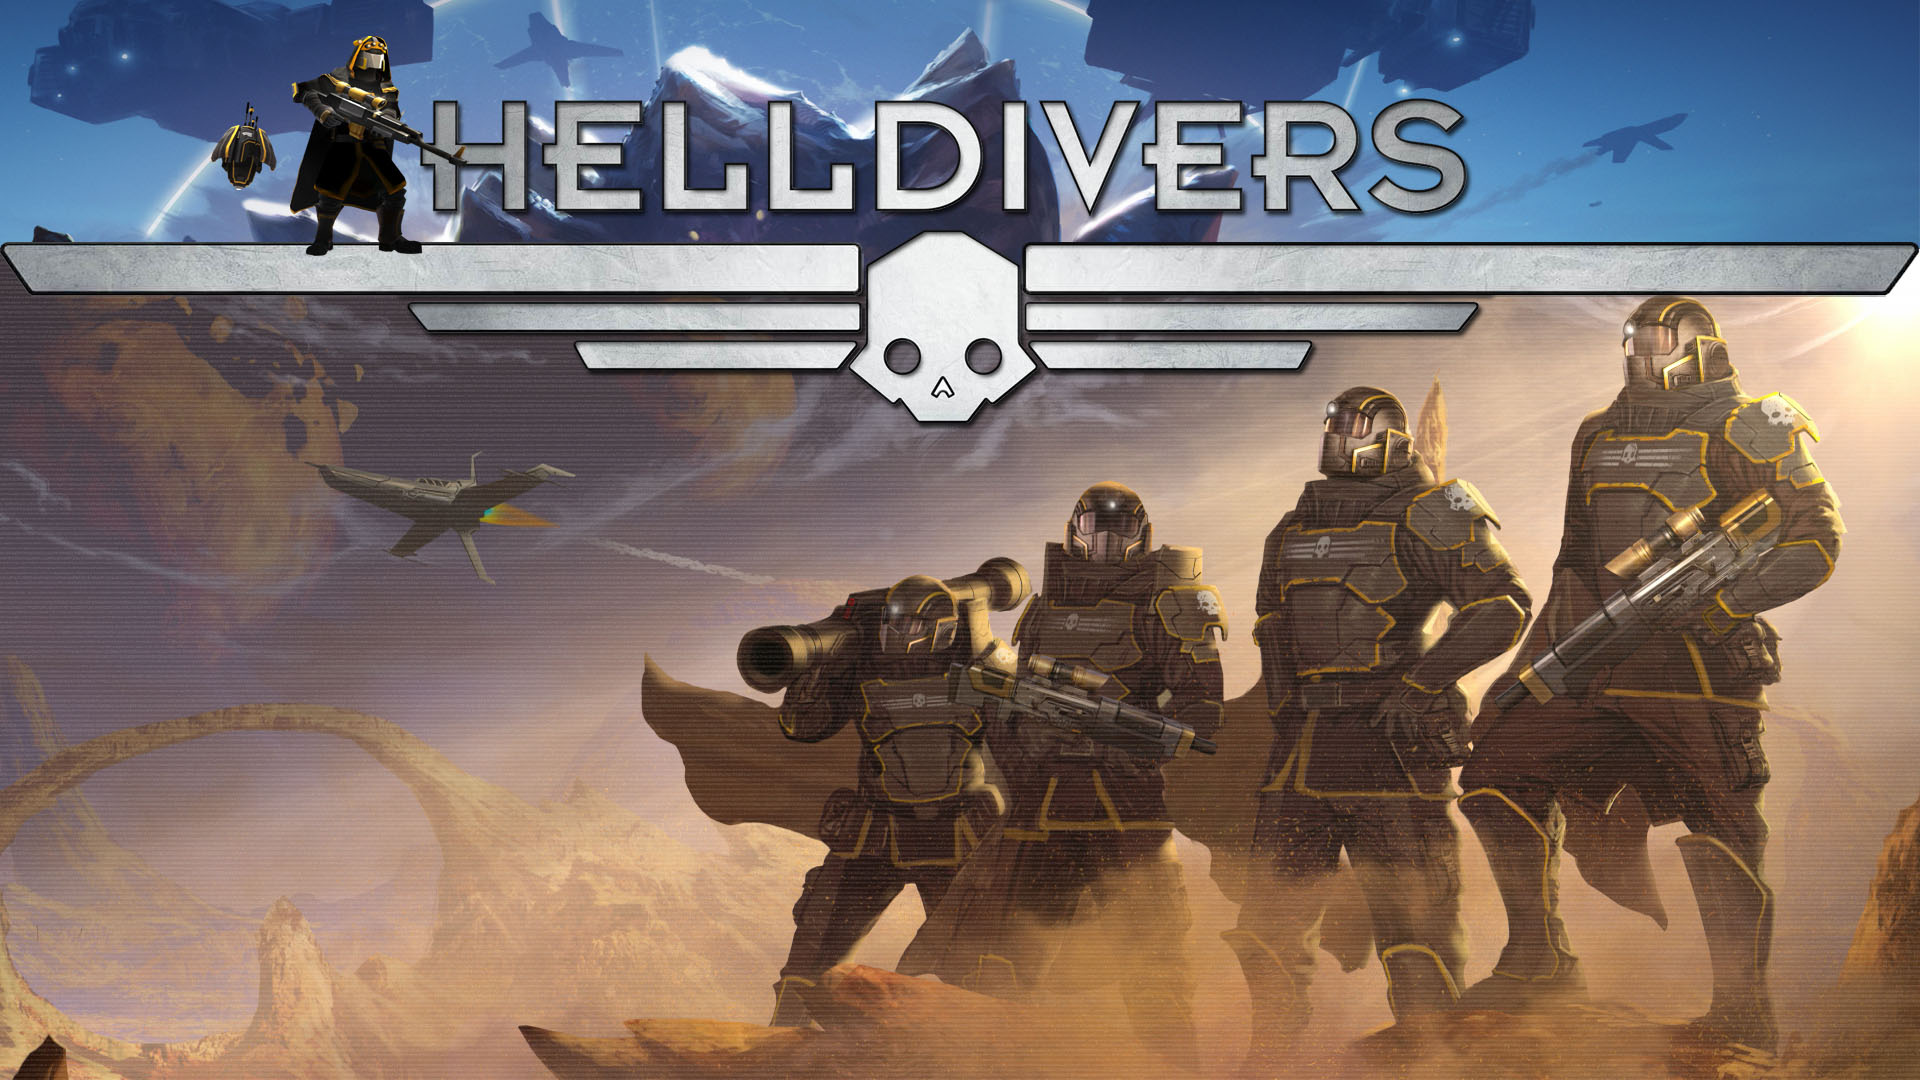 Helldivers Hd Wallpapers 7wallpapers Net